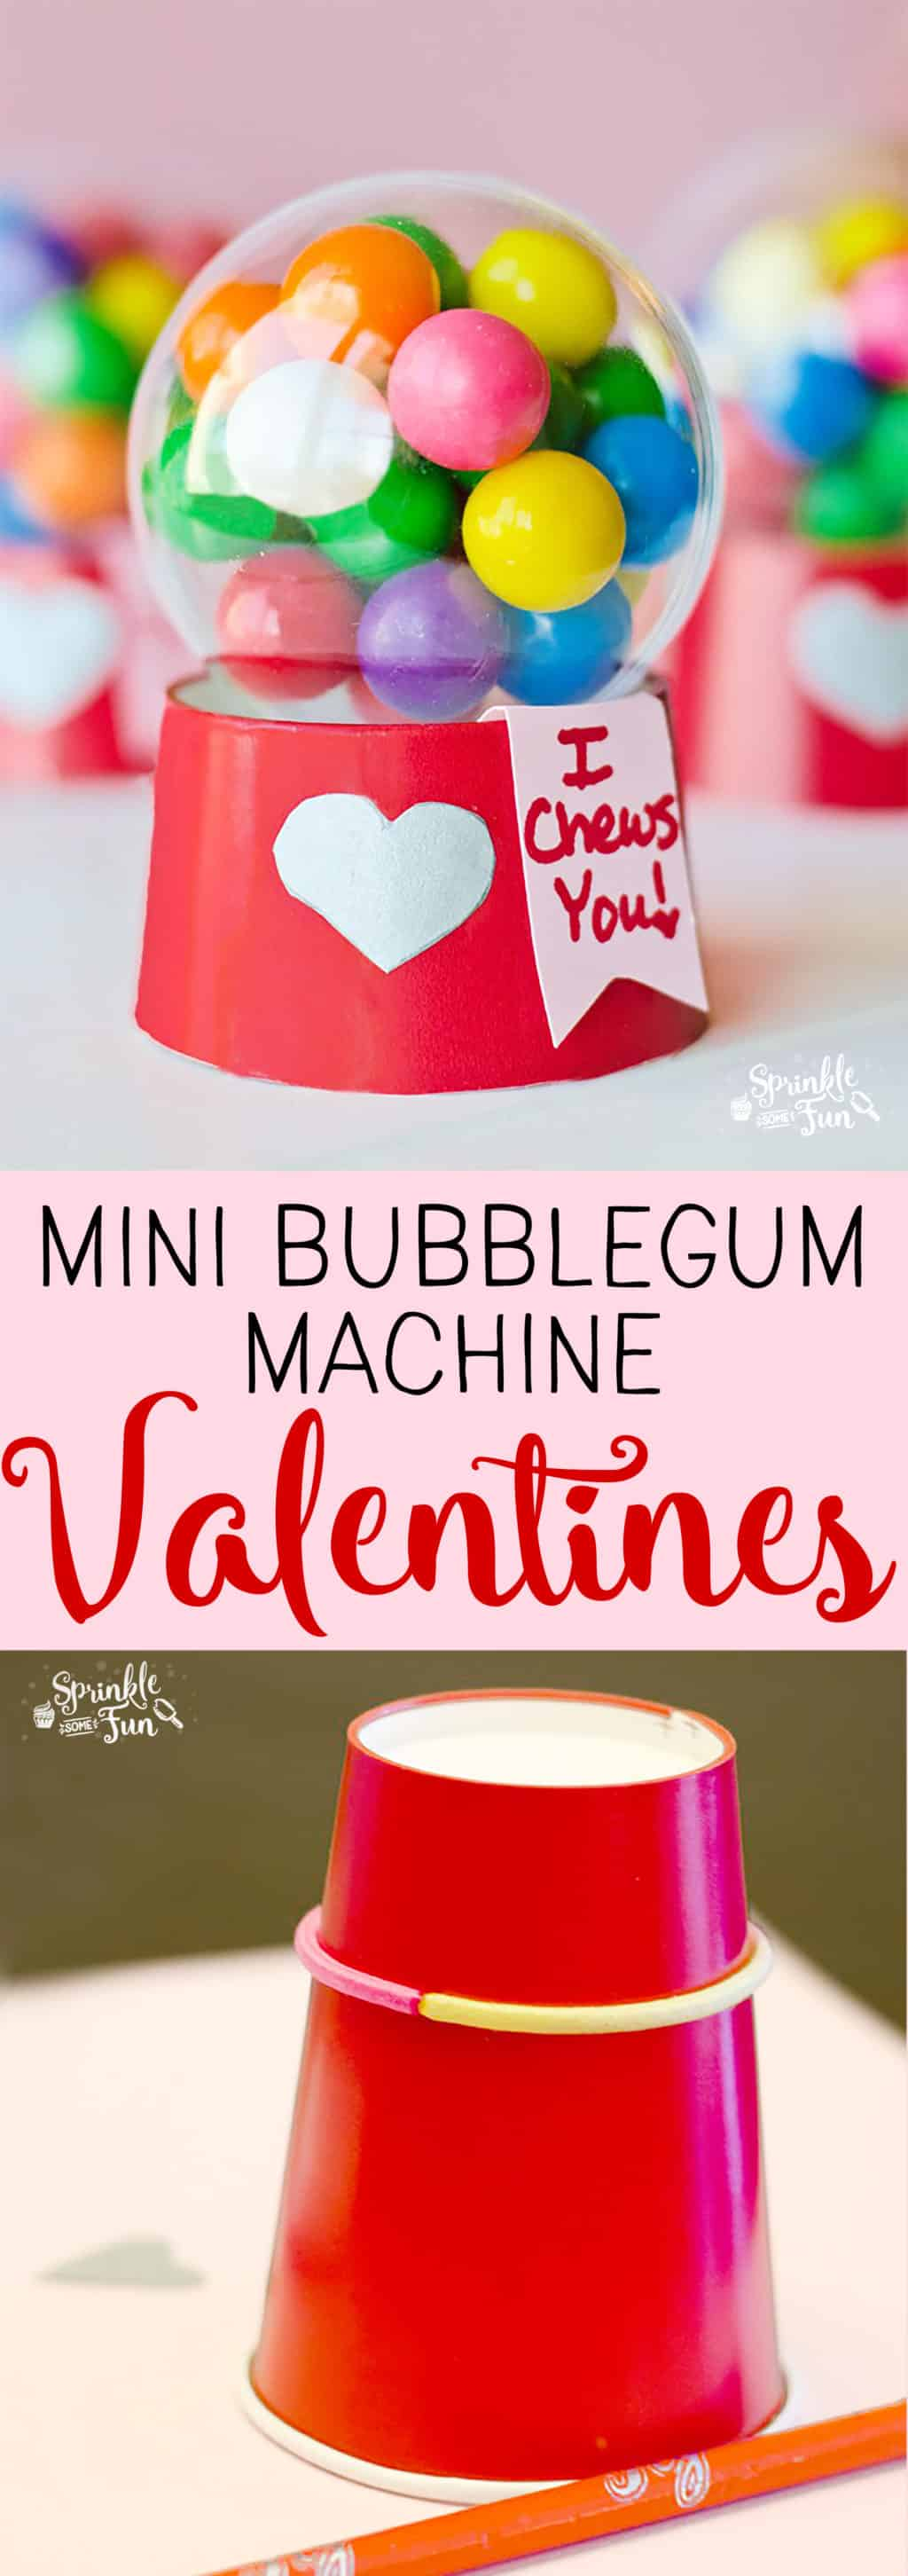 These Mini Bubblegum Machine Valentine's are a super cute gift for Valentine's Day.  Kids love making and enjoying this DIY gift!